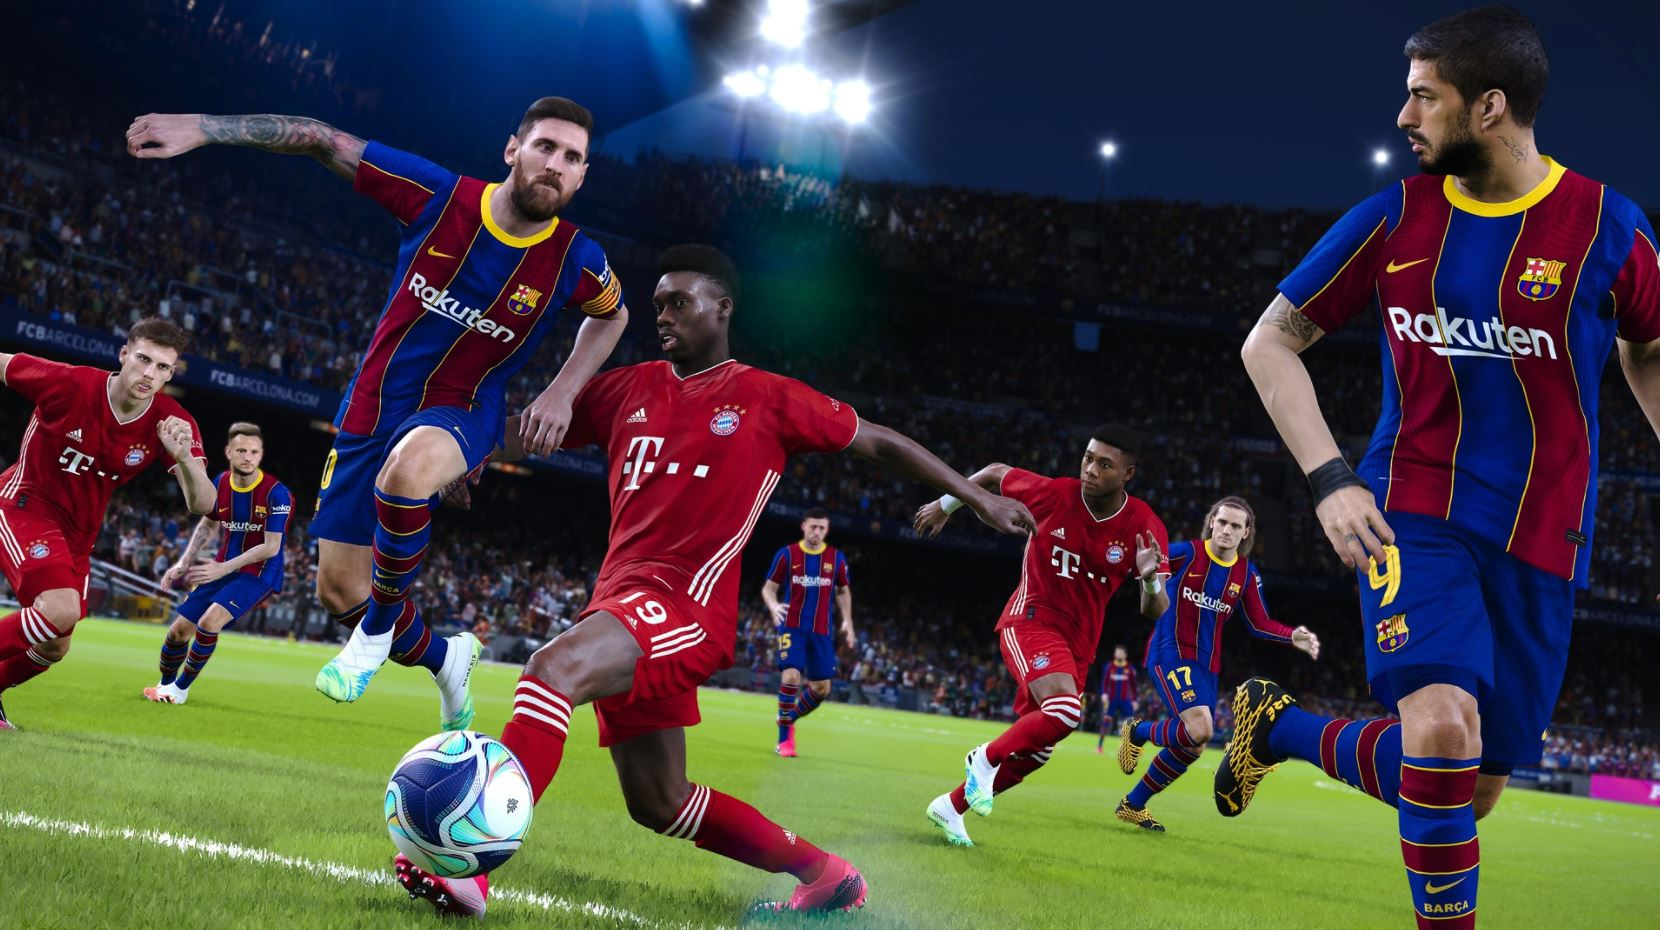 efootball-pes-2022-announcement-due-soon-as-performance-test-is-rated-in-taiwan